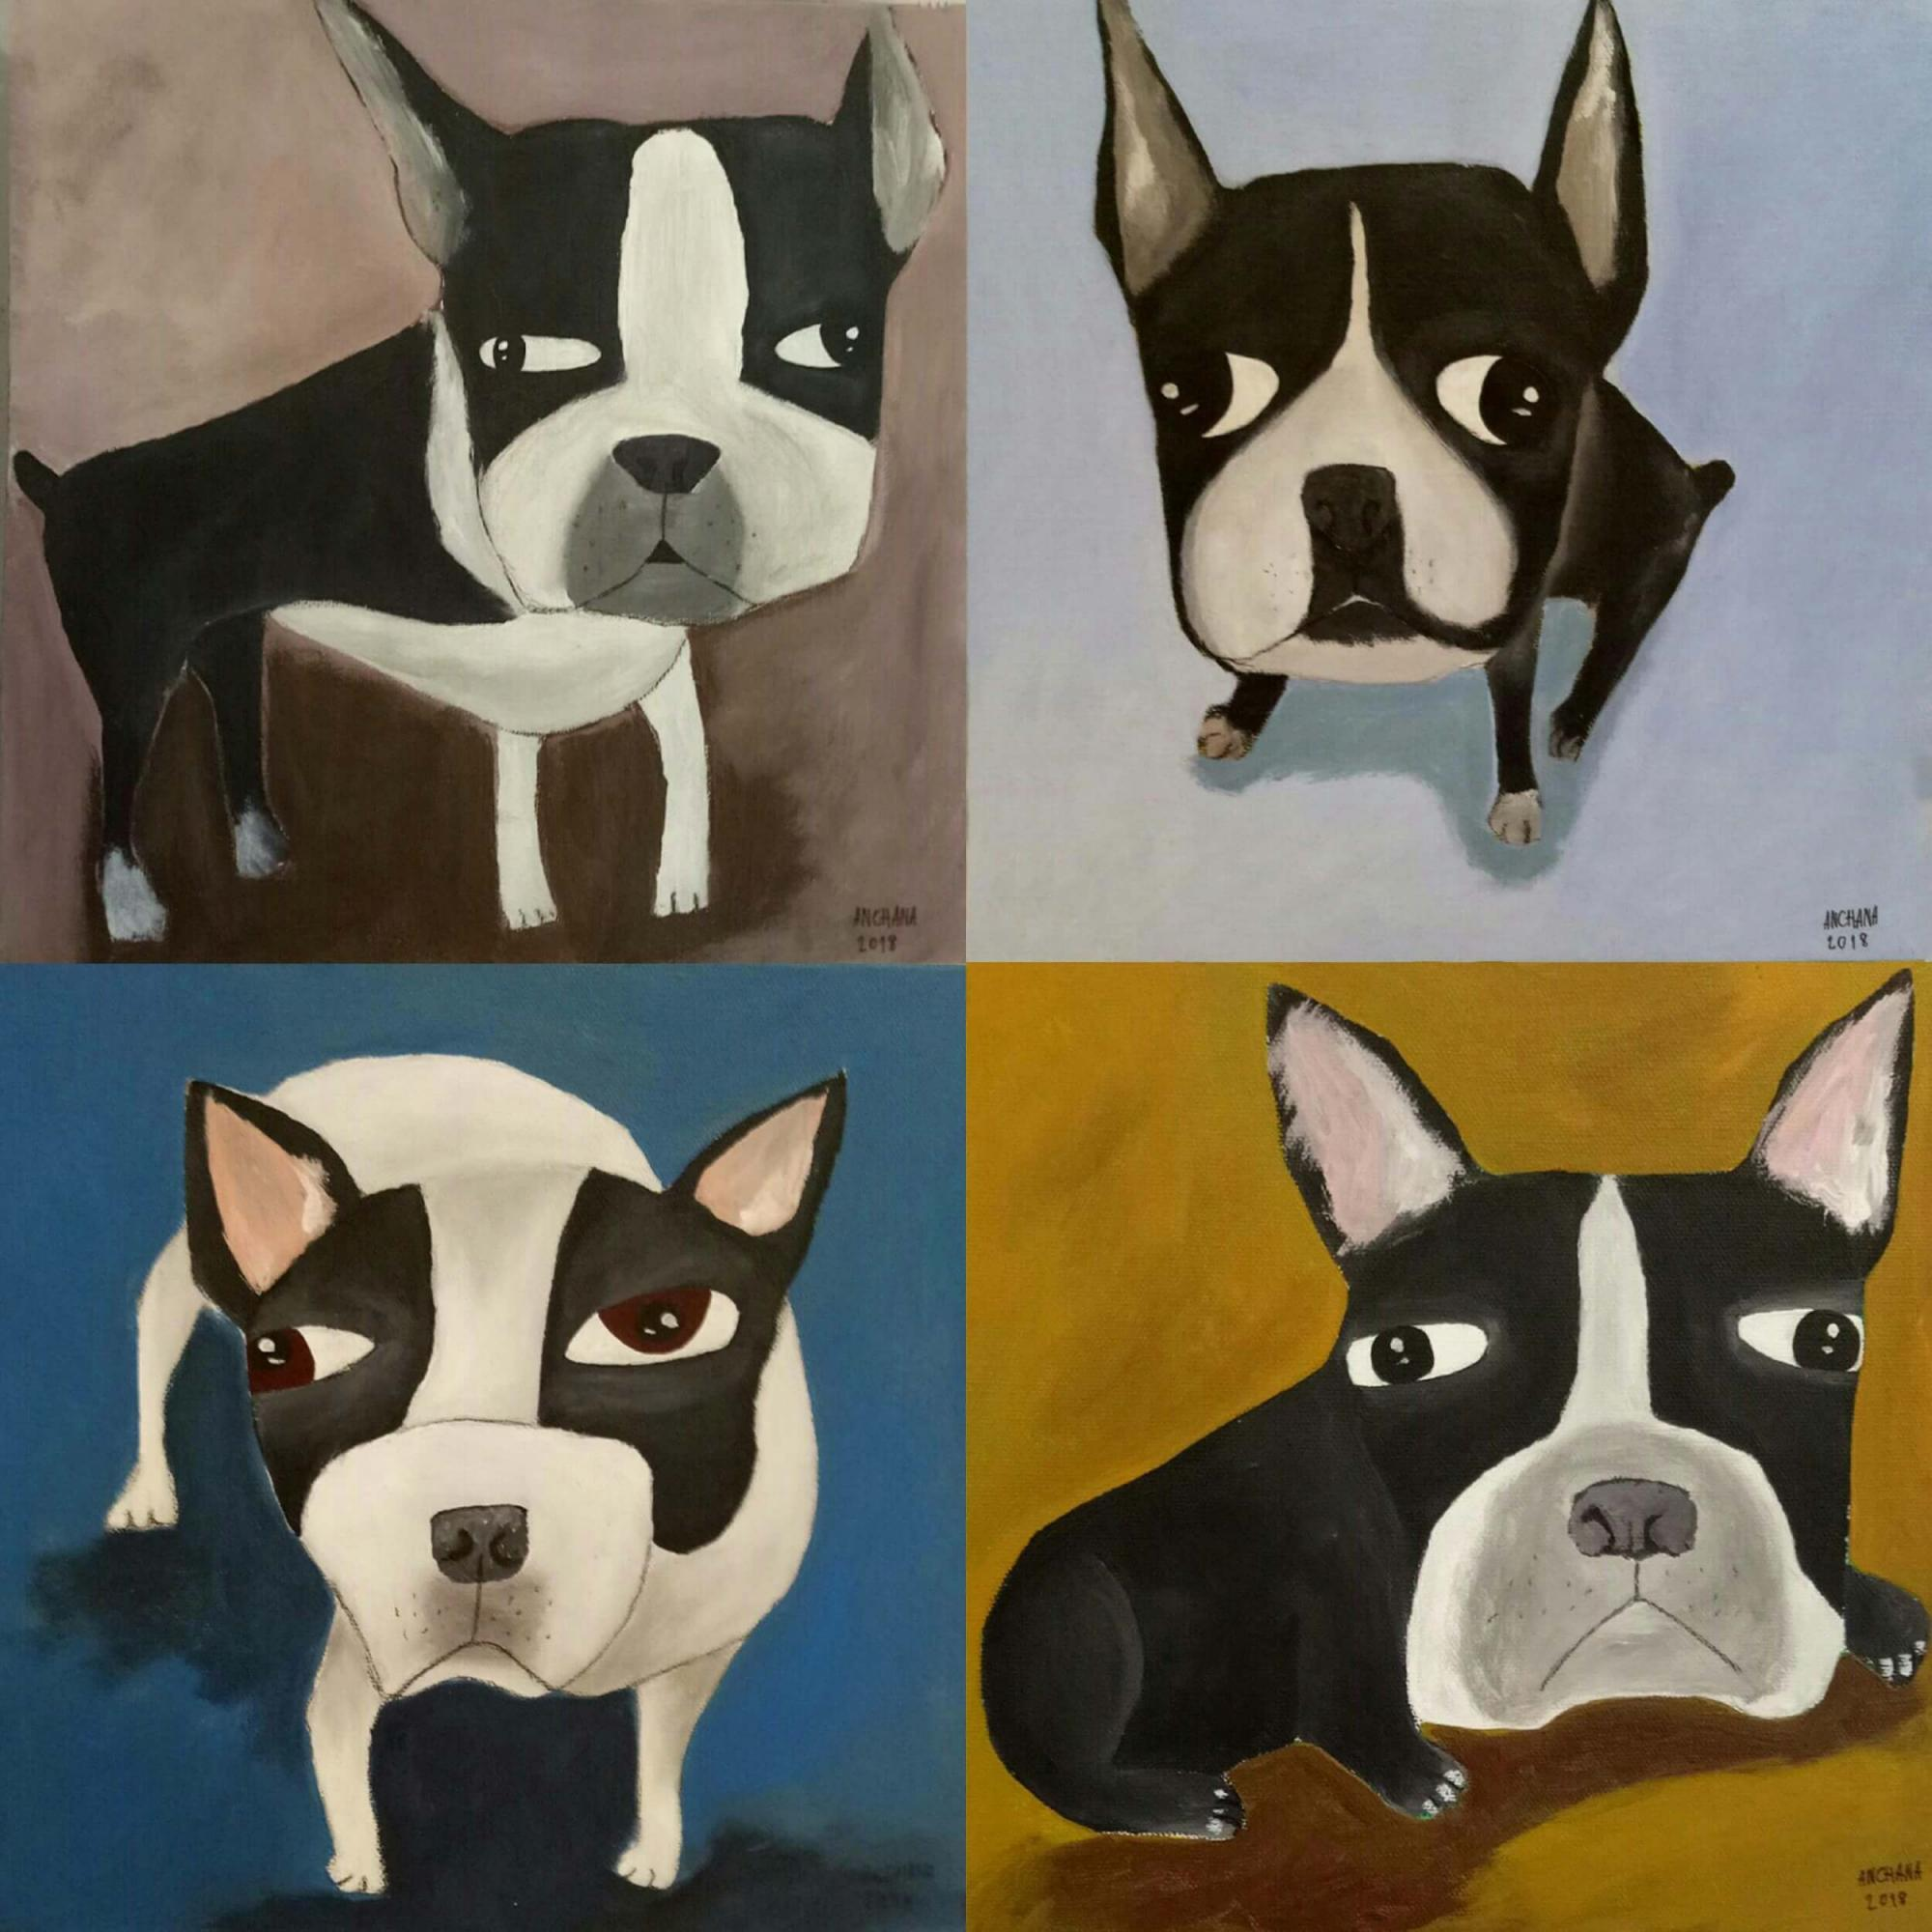 French Bulldog Series 法鬥系列 Anchana CHAREEAPAPORN 安恰娜‧恰麗亞琵朋 (Thailand, 1977-) acrylic on canvas 壓克力彩、畫布 50 x 50 cm 2018